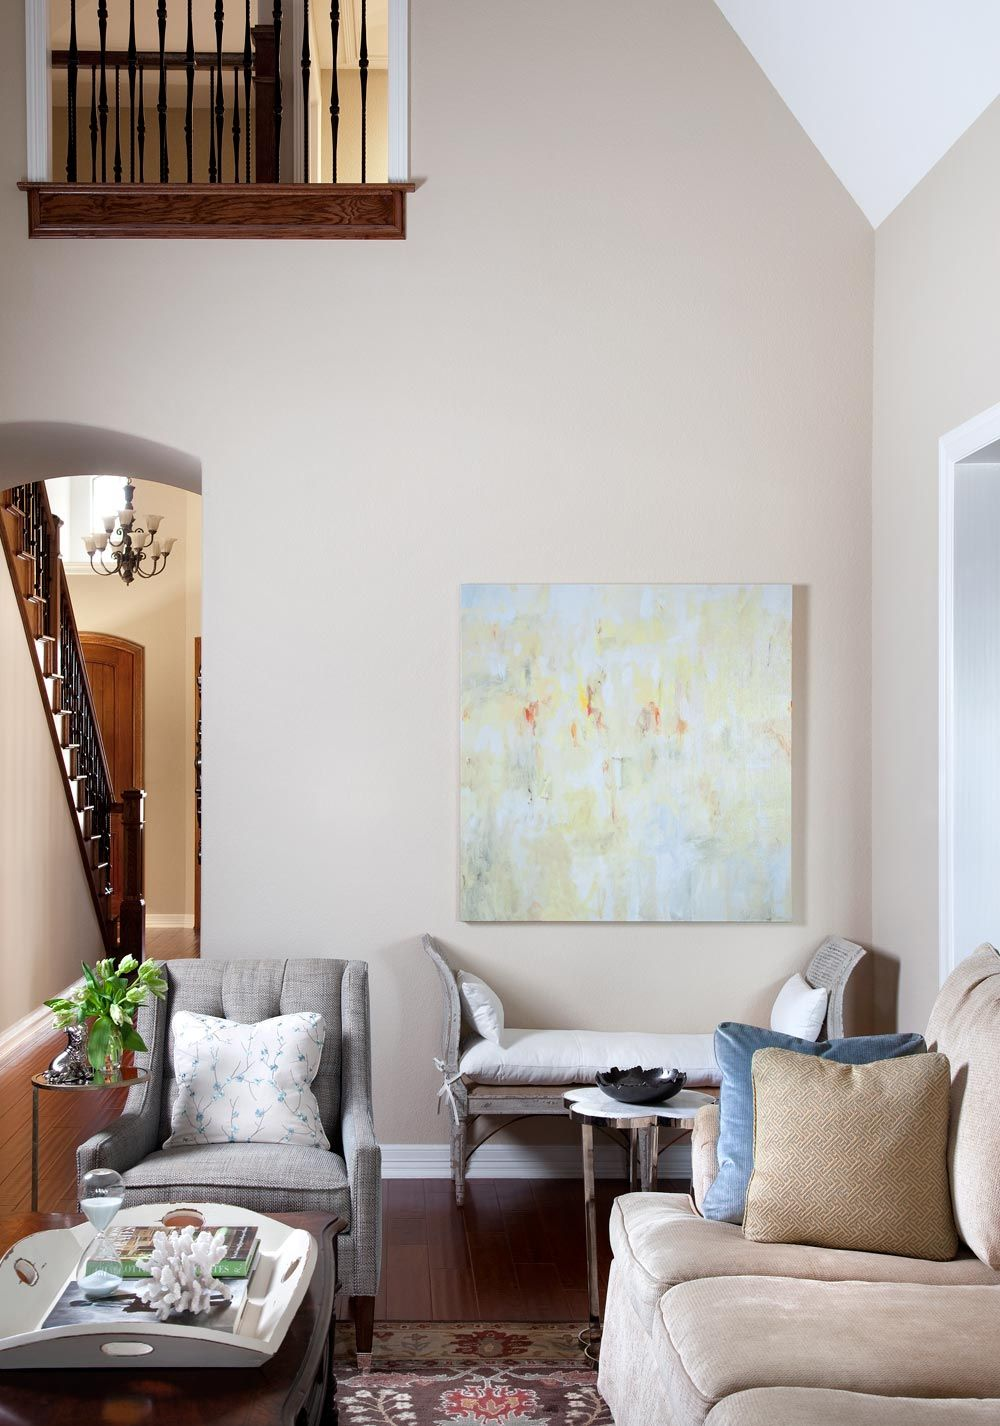 Abstract Room Designs: Neutral Living Room With Large Hanging Abstract Art Canvas